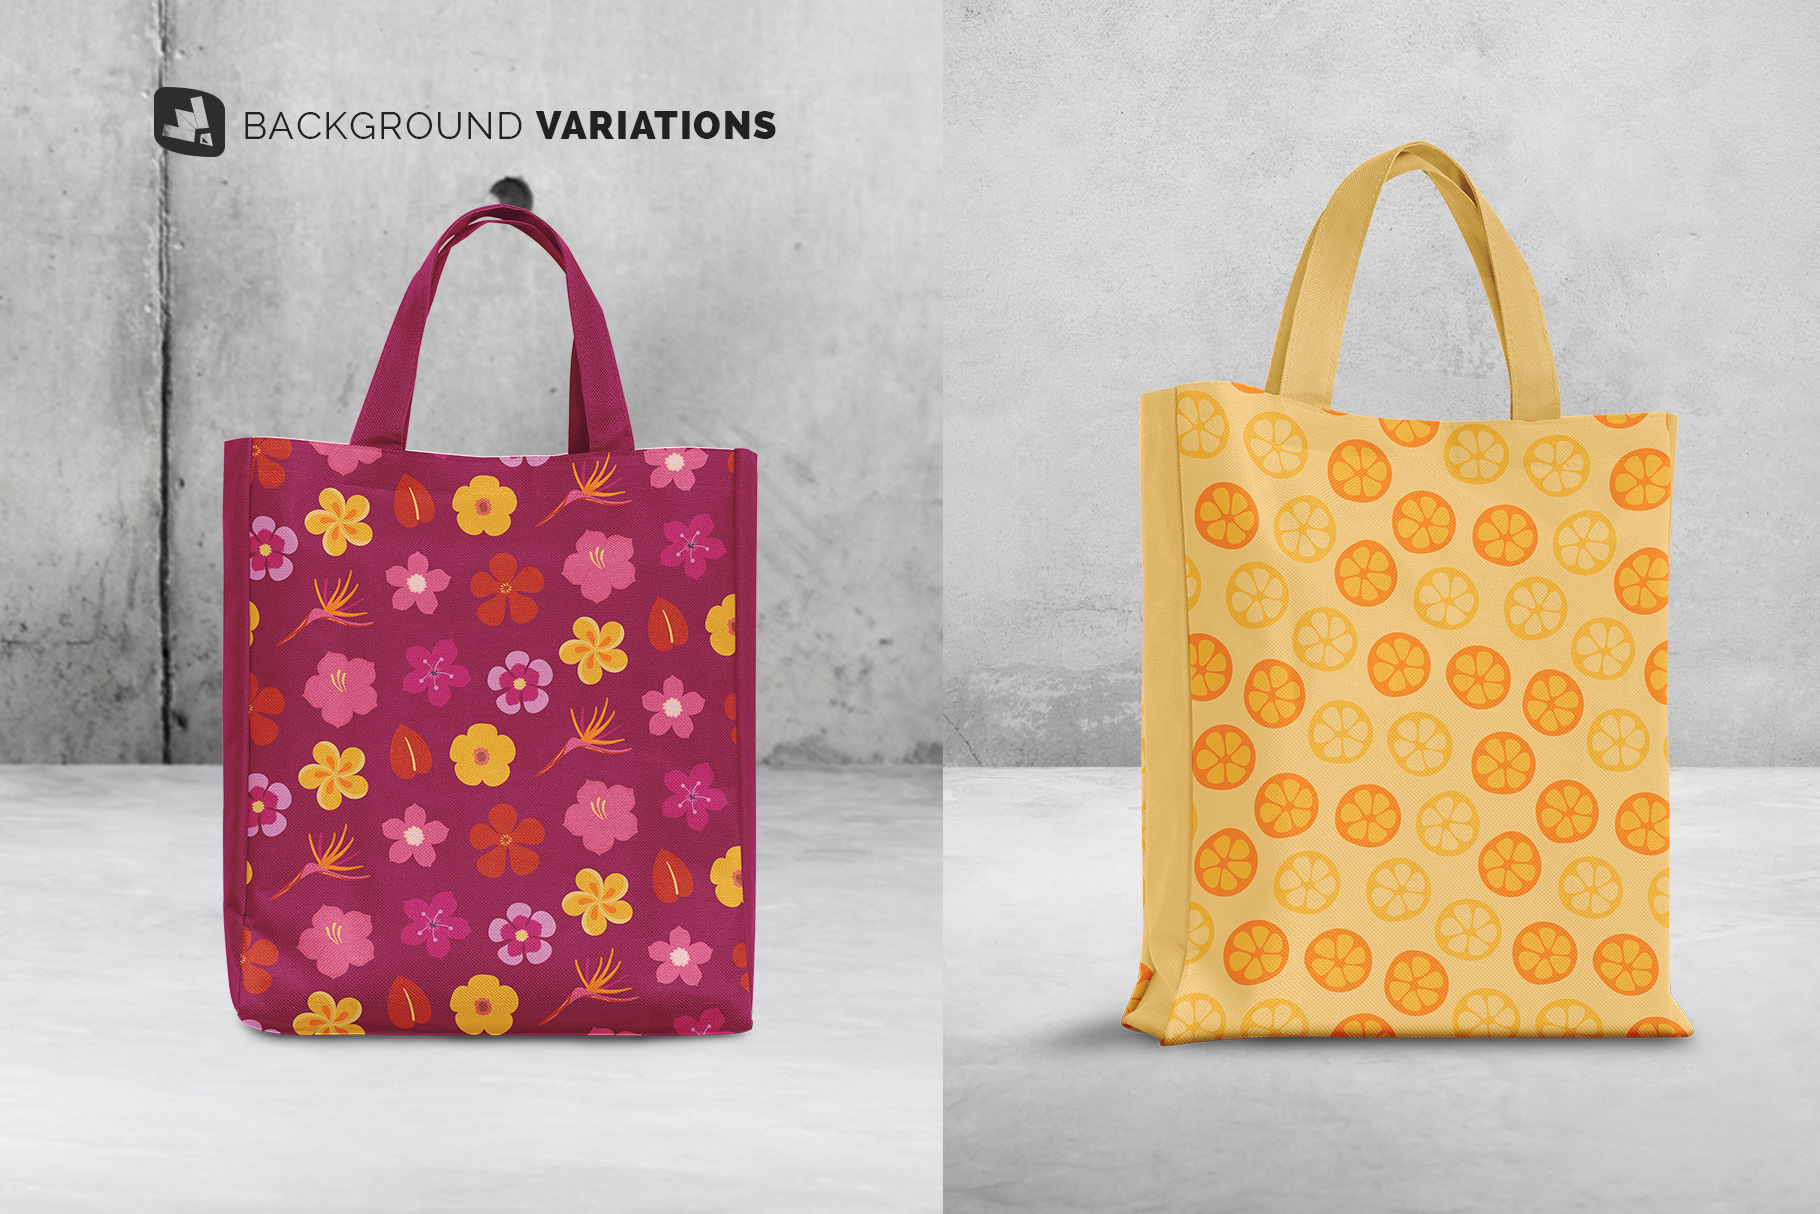 background options of the front view canvas bag mockup